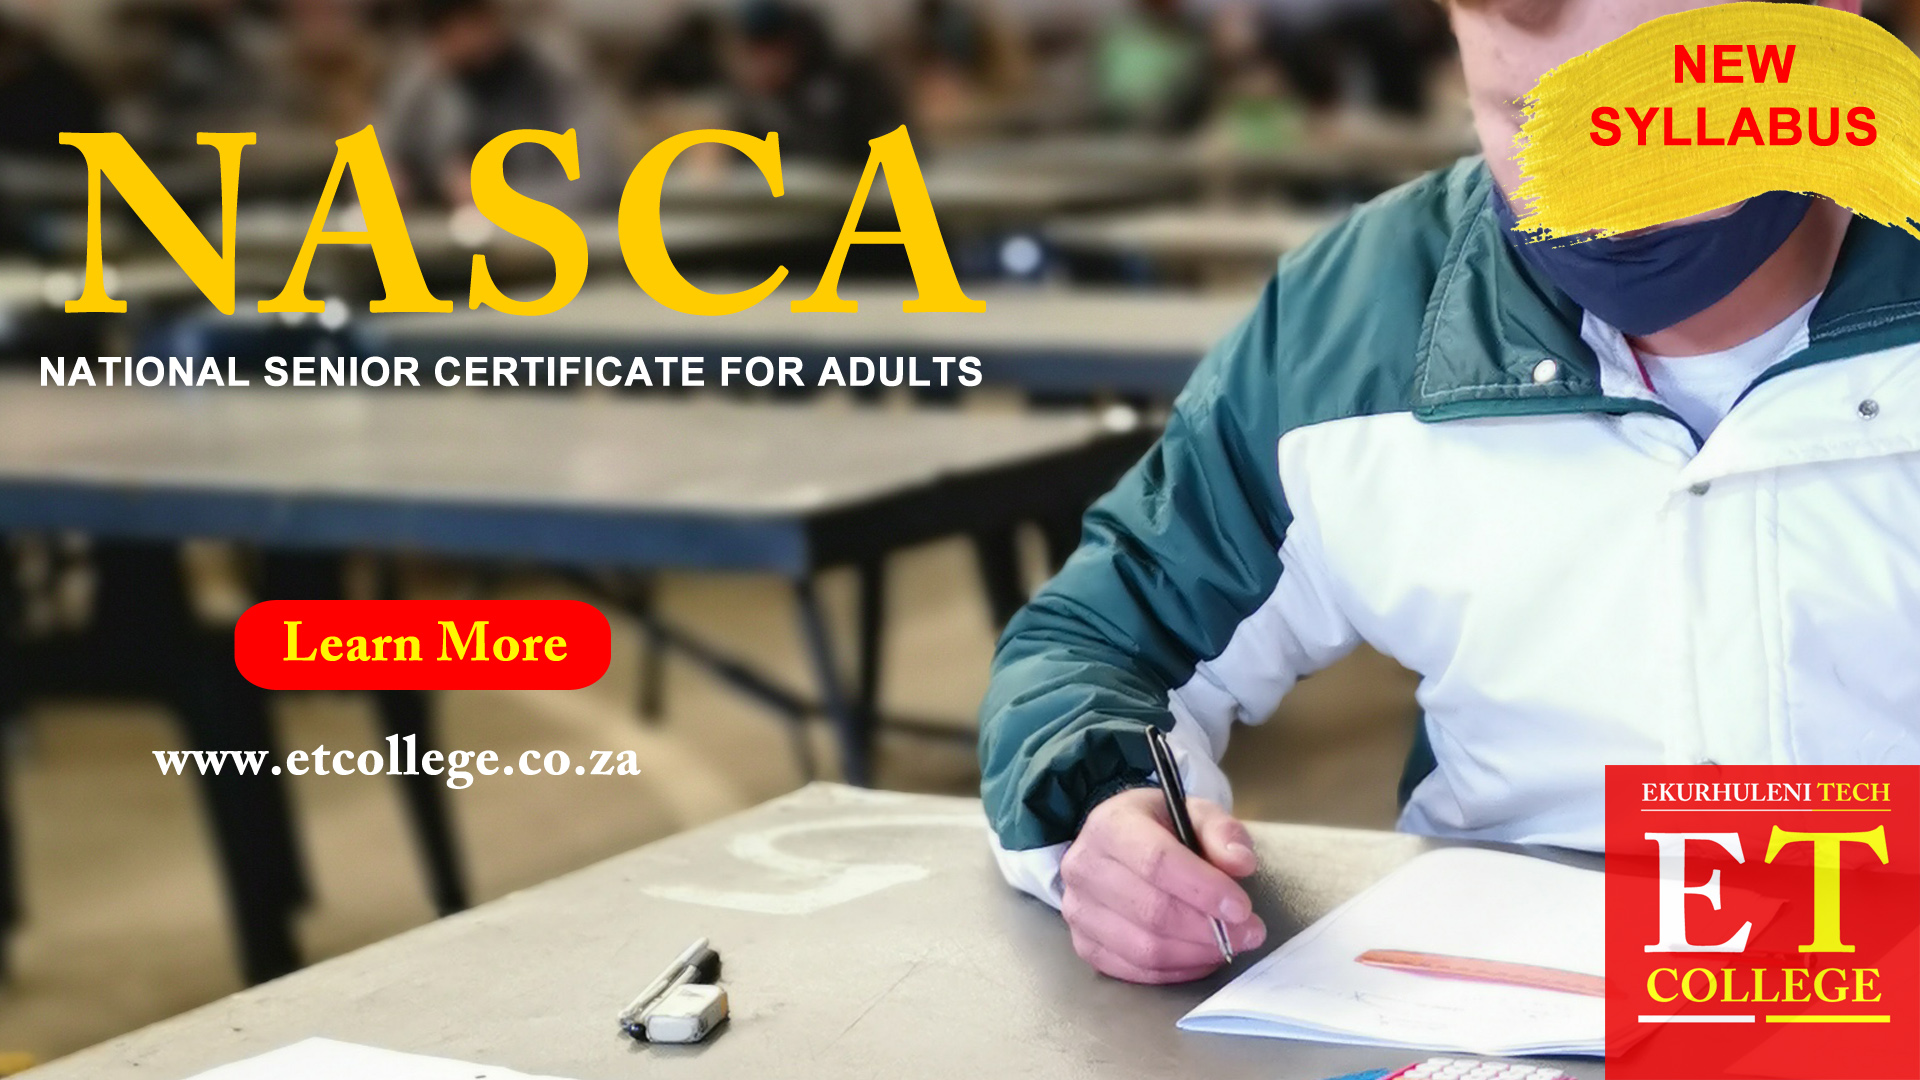 What Is Nasca National Senior Certificate For Adults A New Adult Matric